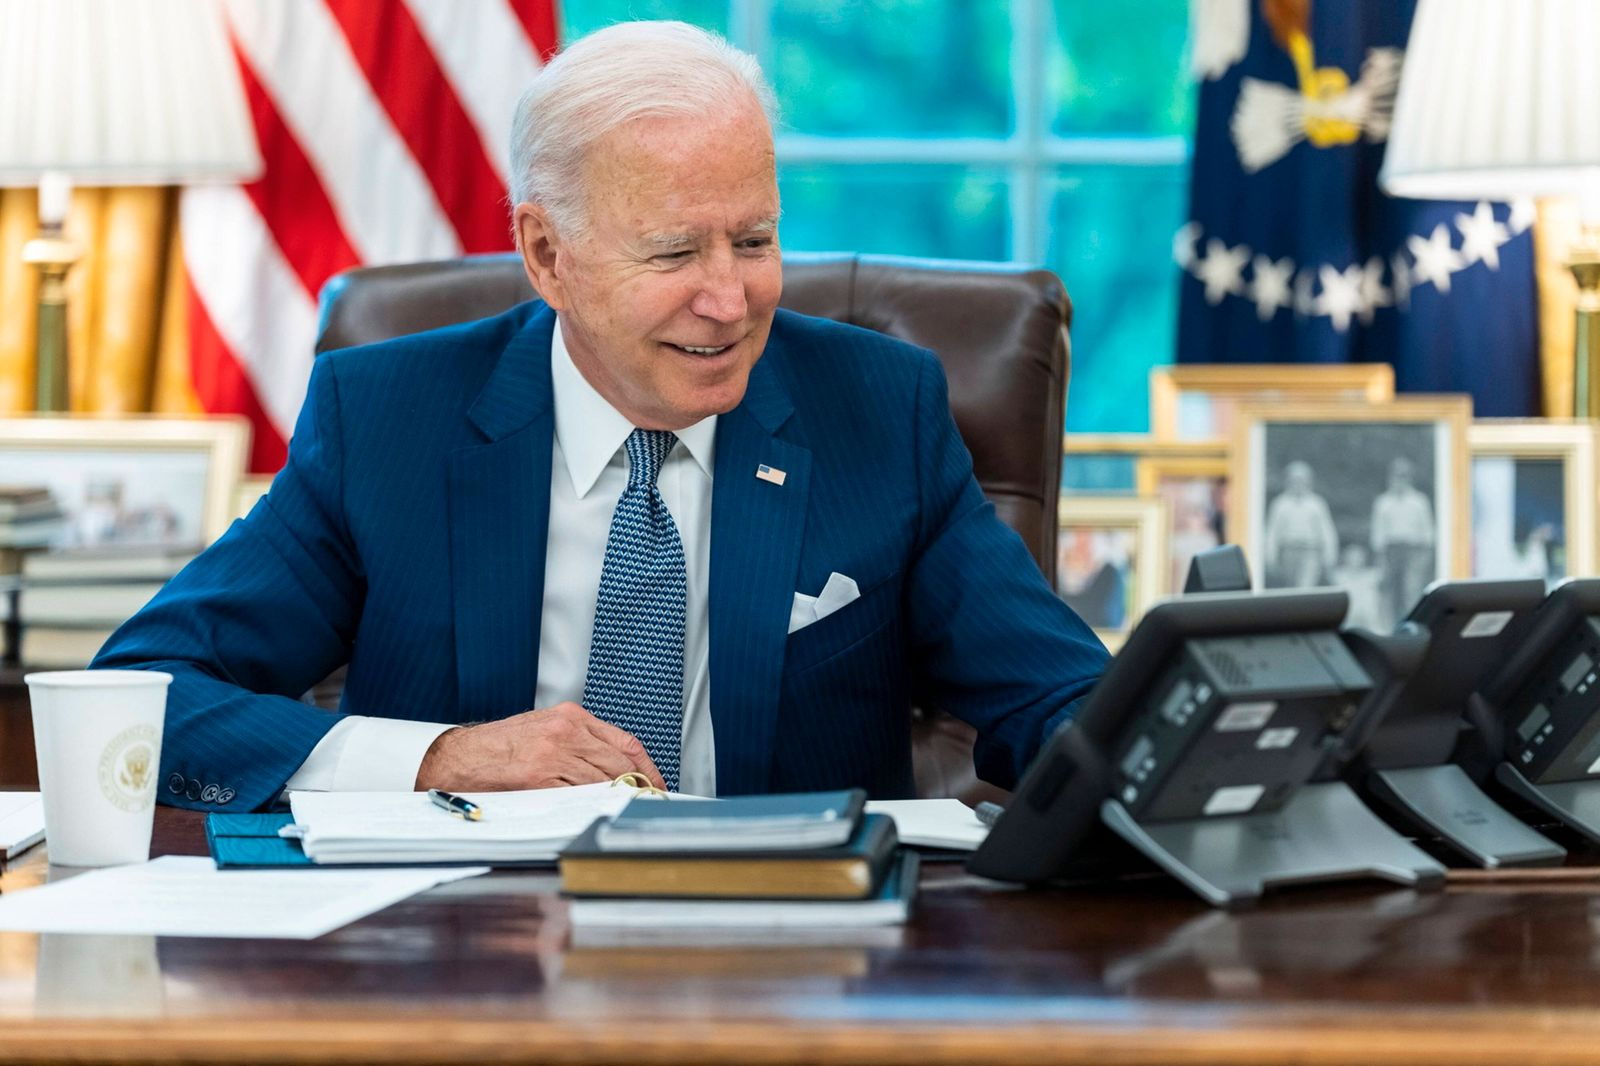 STYLELOCATIONU.S President Joe Biden, right, meets with British Prime Minister Boris Johnson in the Oval Office of the